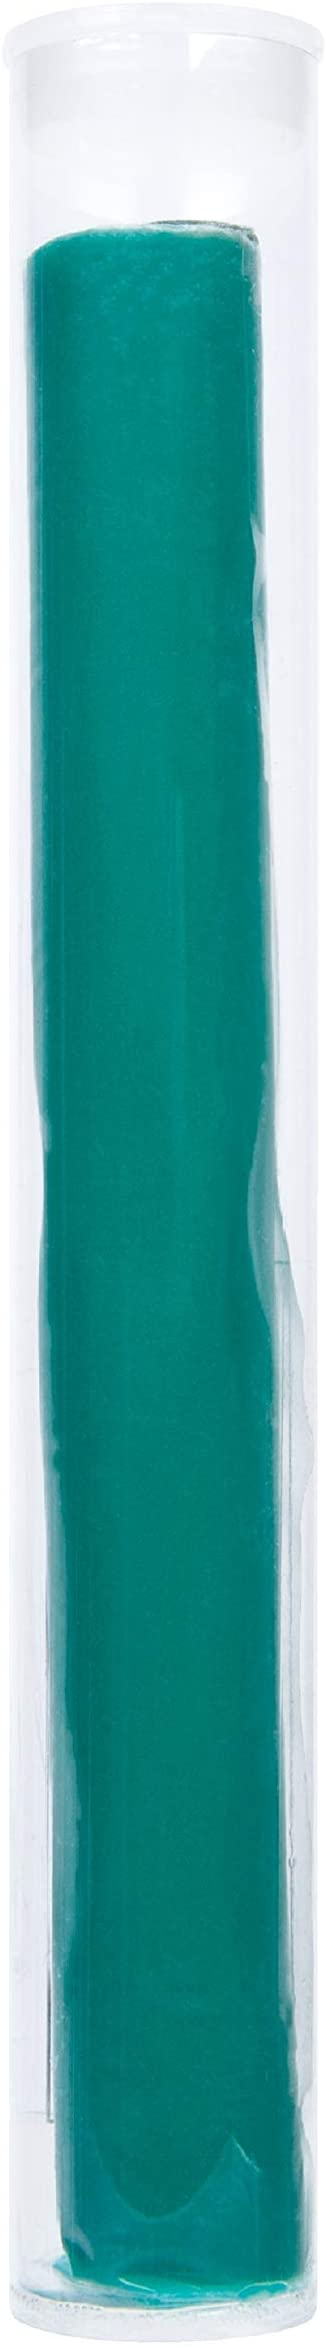 Instant Ocean HF-1 product image 4